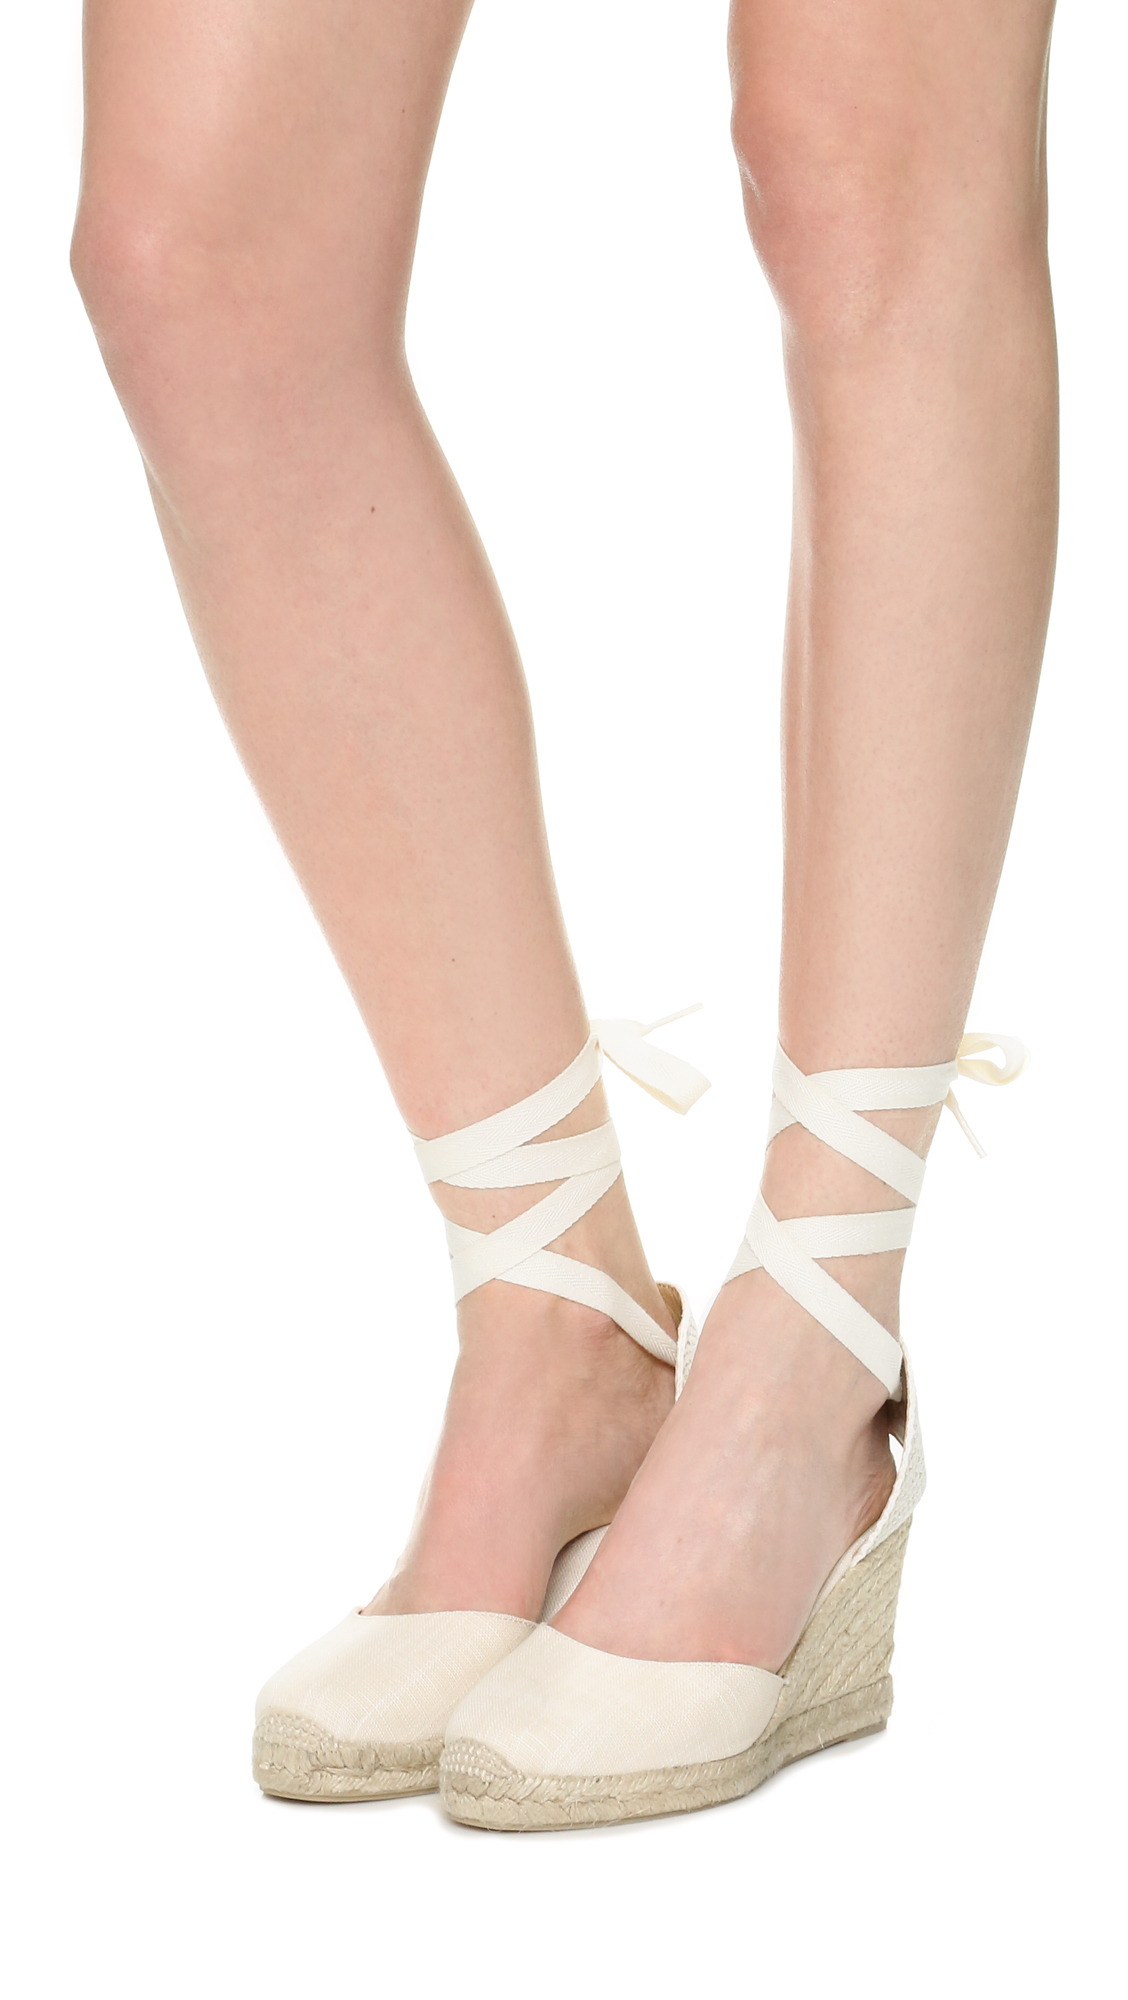 8a98af7b96ae9 Lyst - Soludos Tall Wedge Espadrilles in Natural